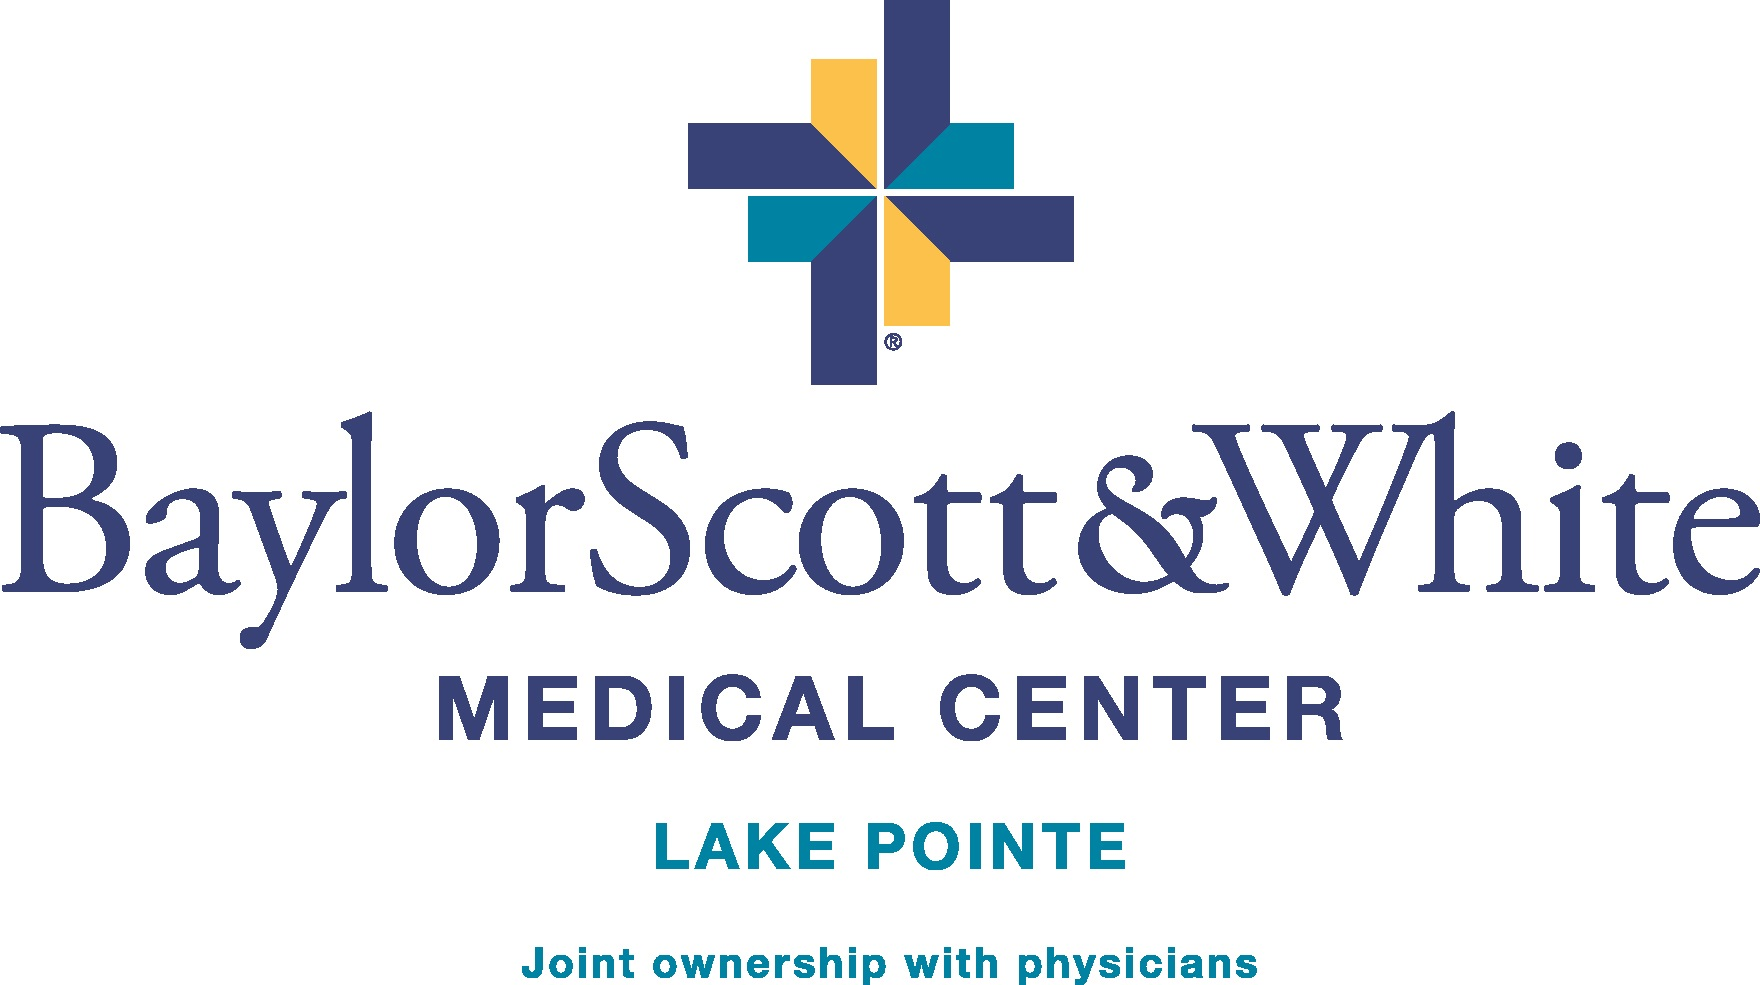 BSW Medical Center Lake Pointe jowp_C_PMS.jpg